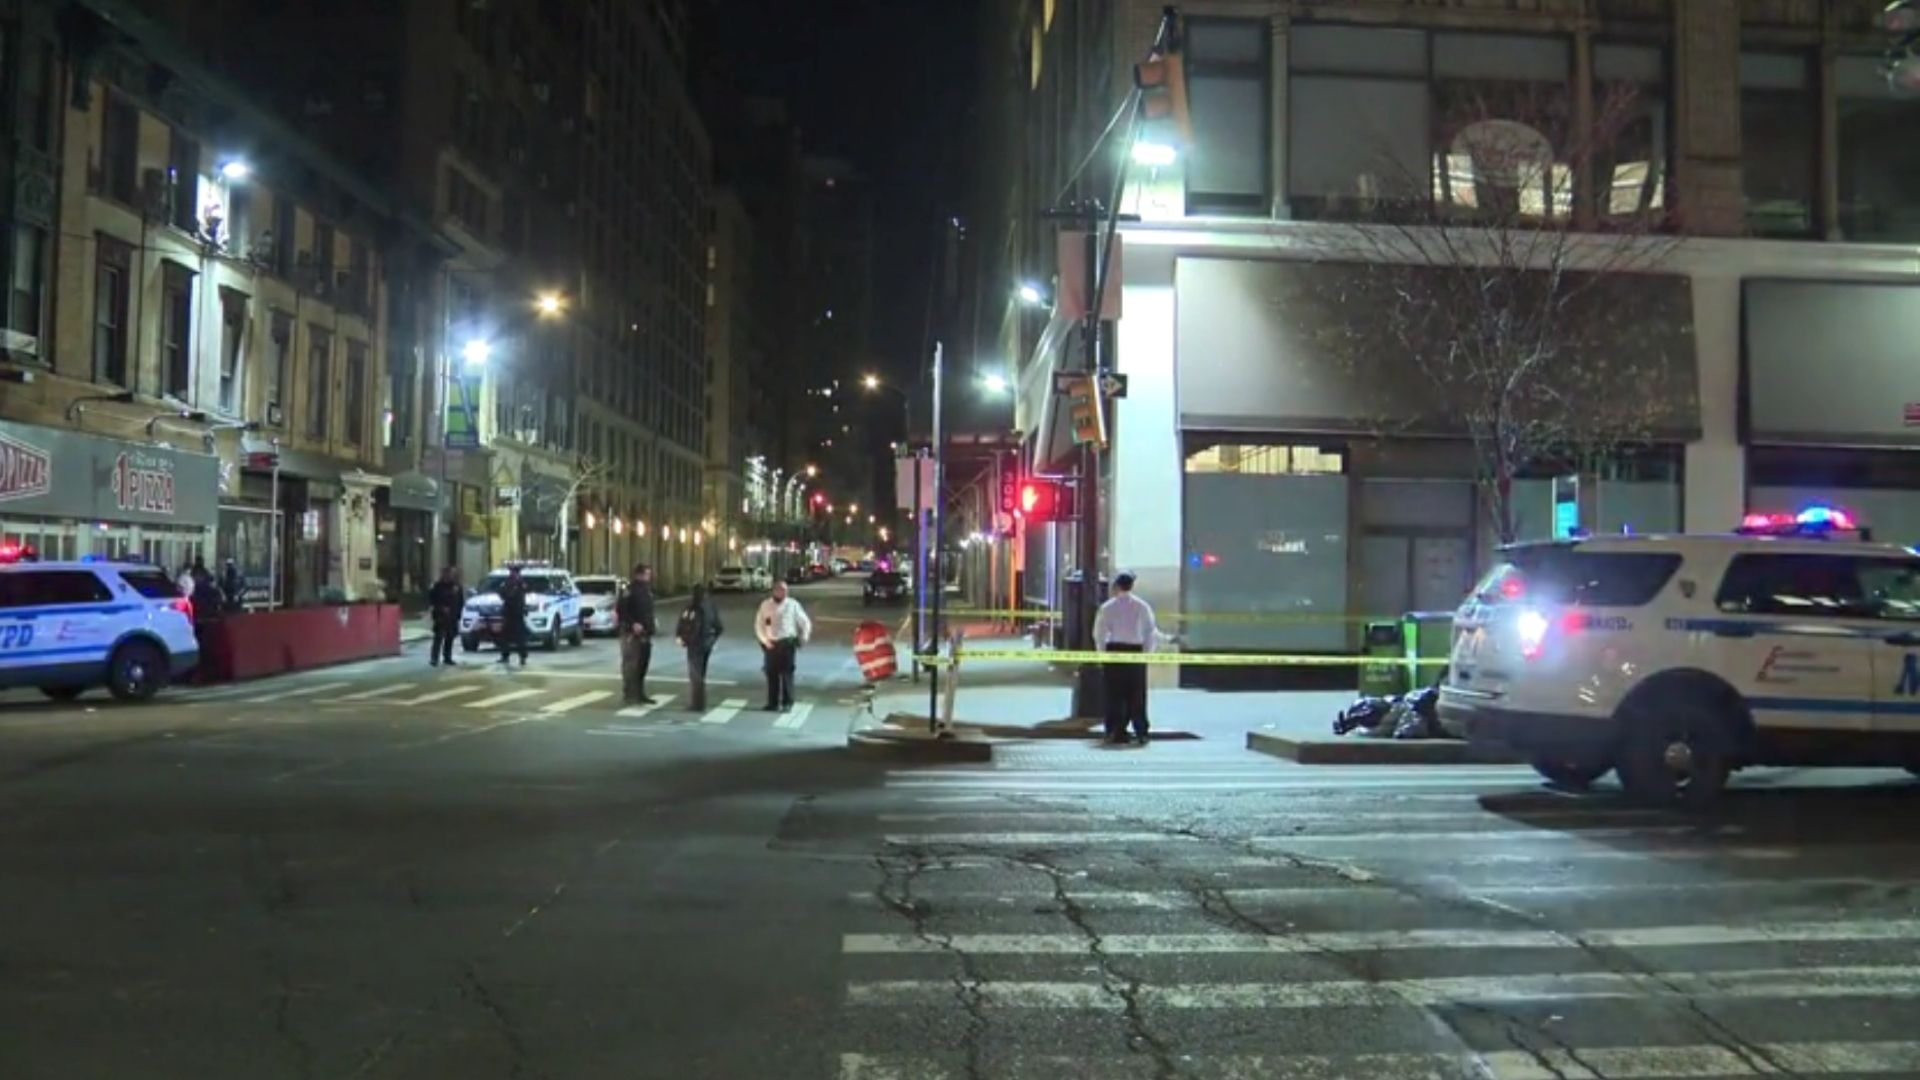 Police on the scene at West 38th Street and Eighth Avenue after a tourist was struck by a stray bullet near Times Square on April 7, 2021, according to the NYPD (PIX11 News)